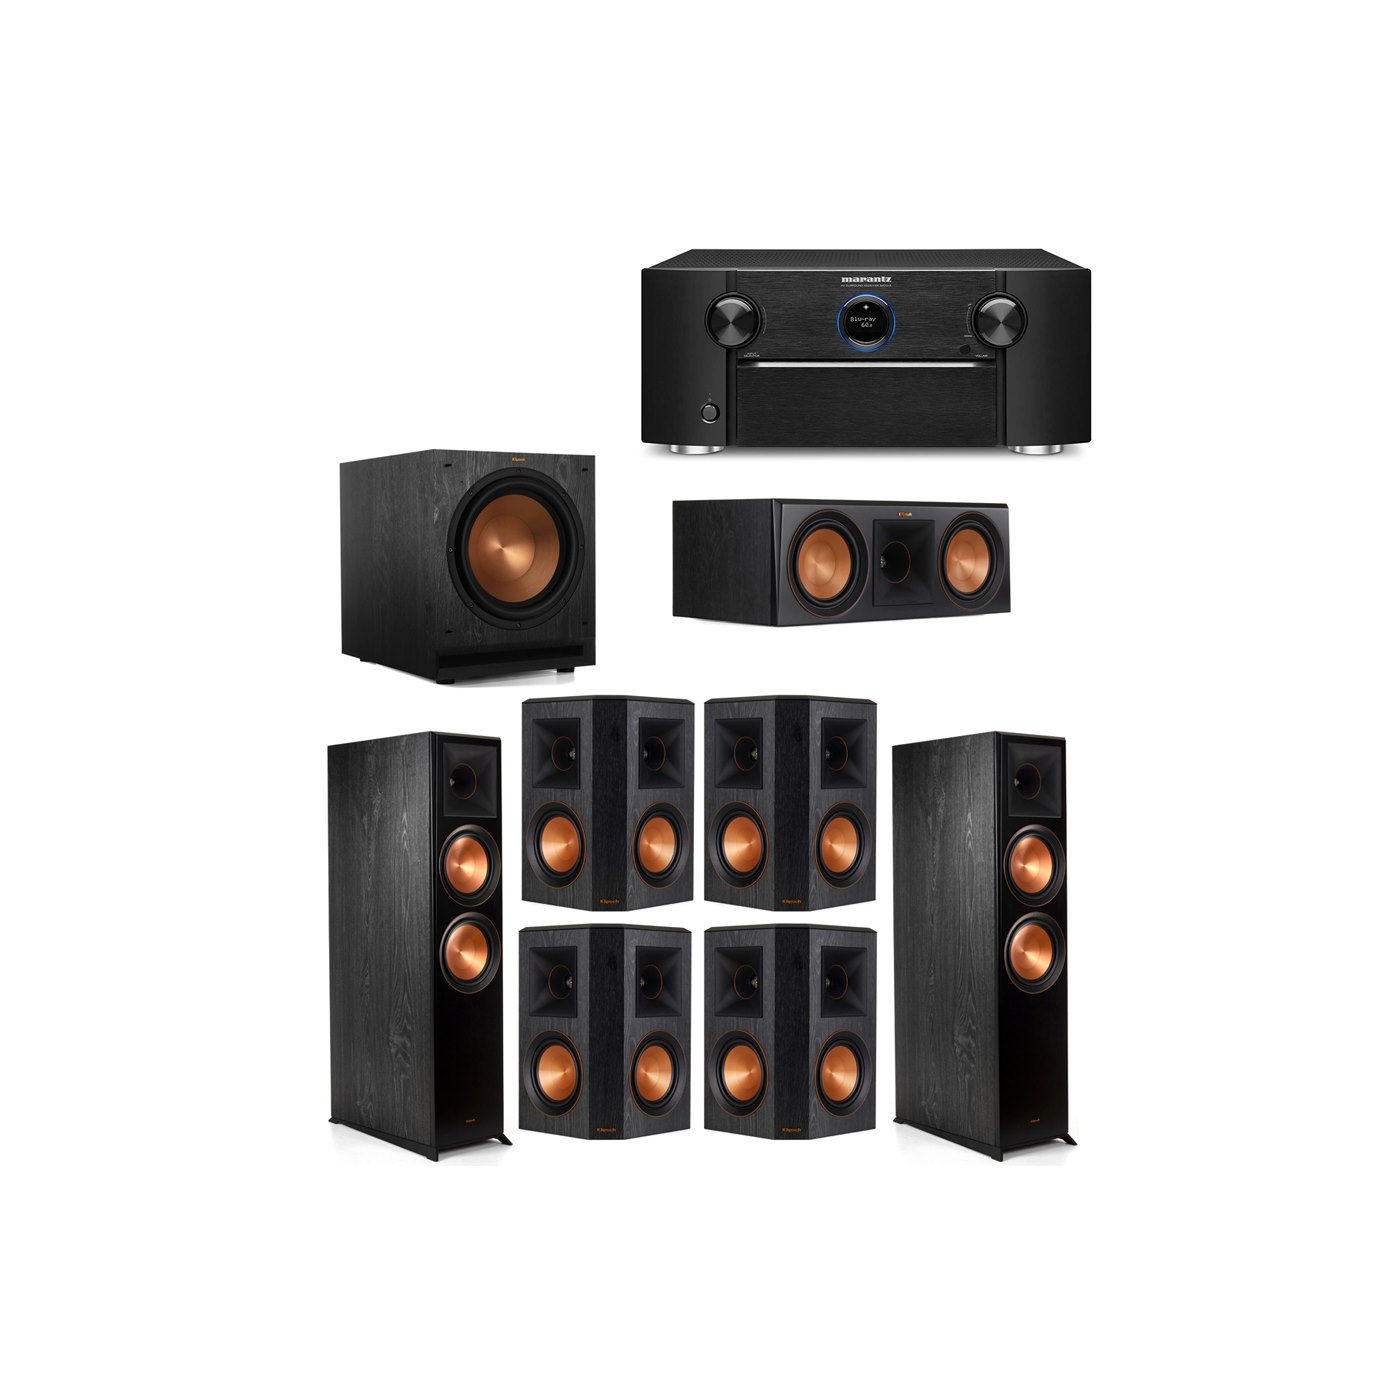 Klipsch 7.1 System with 2 RP-8000F Floorstanding Speakers, 1 Klipsch RP-600C Center Speaker, 4 Klipsch RP-502S Surround Speakers, 1 Klipsch SPL-120 Subwoofer, 1 Marantz SR7012 A/V Receiver